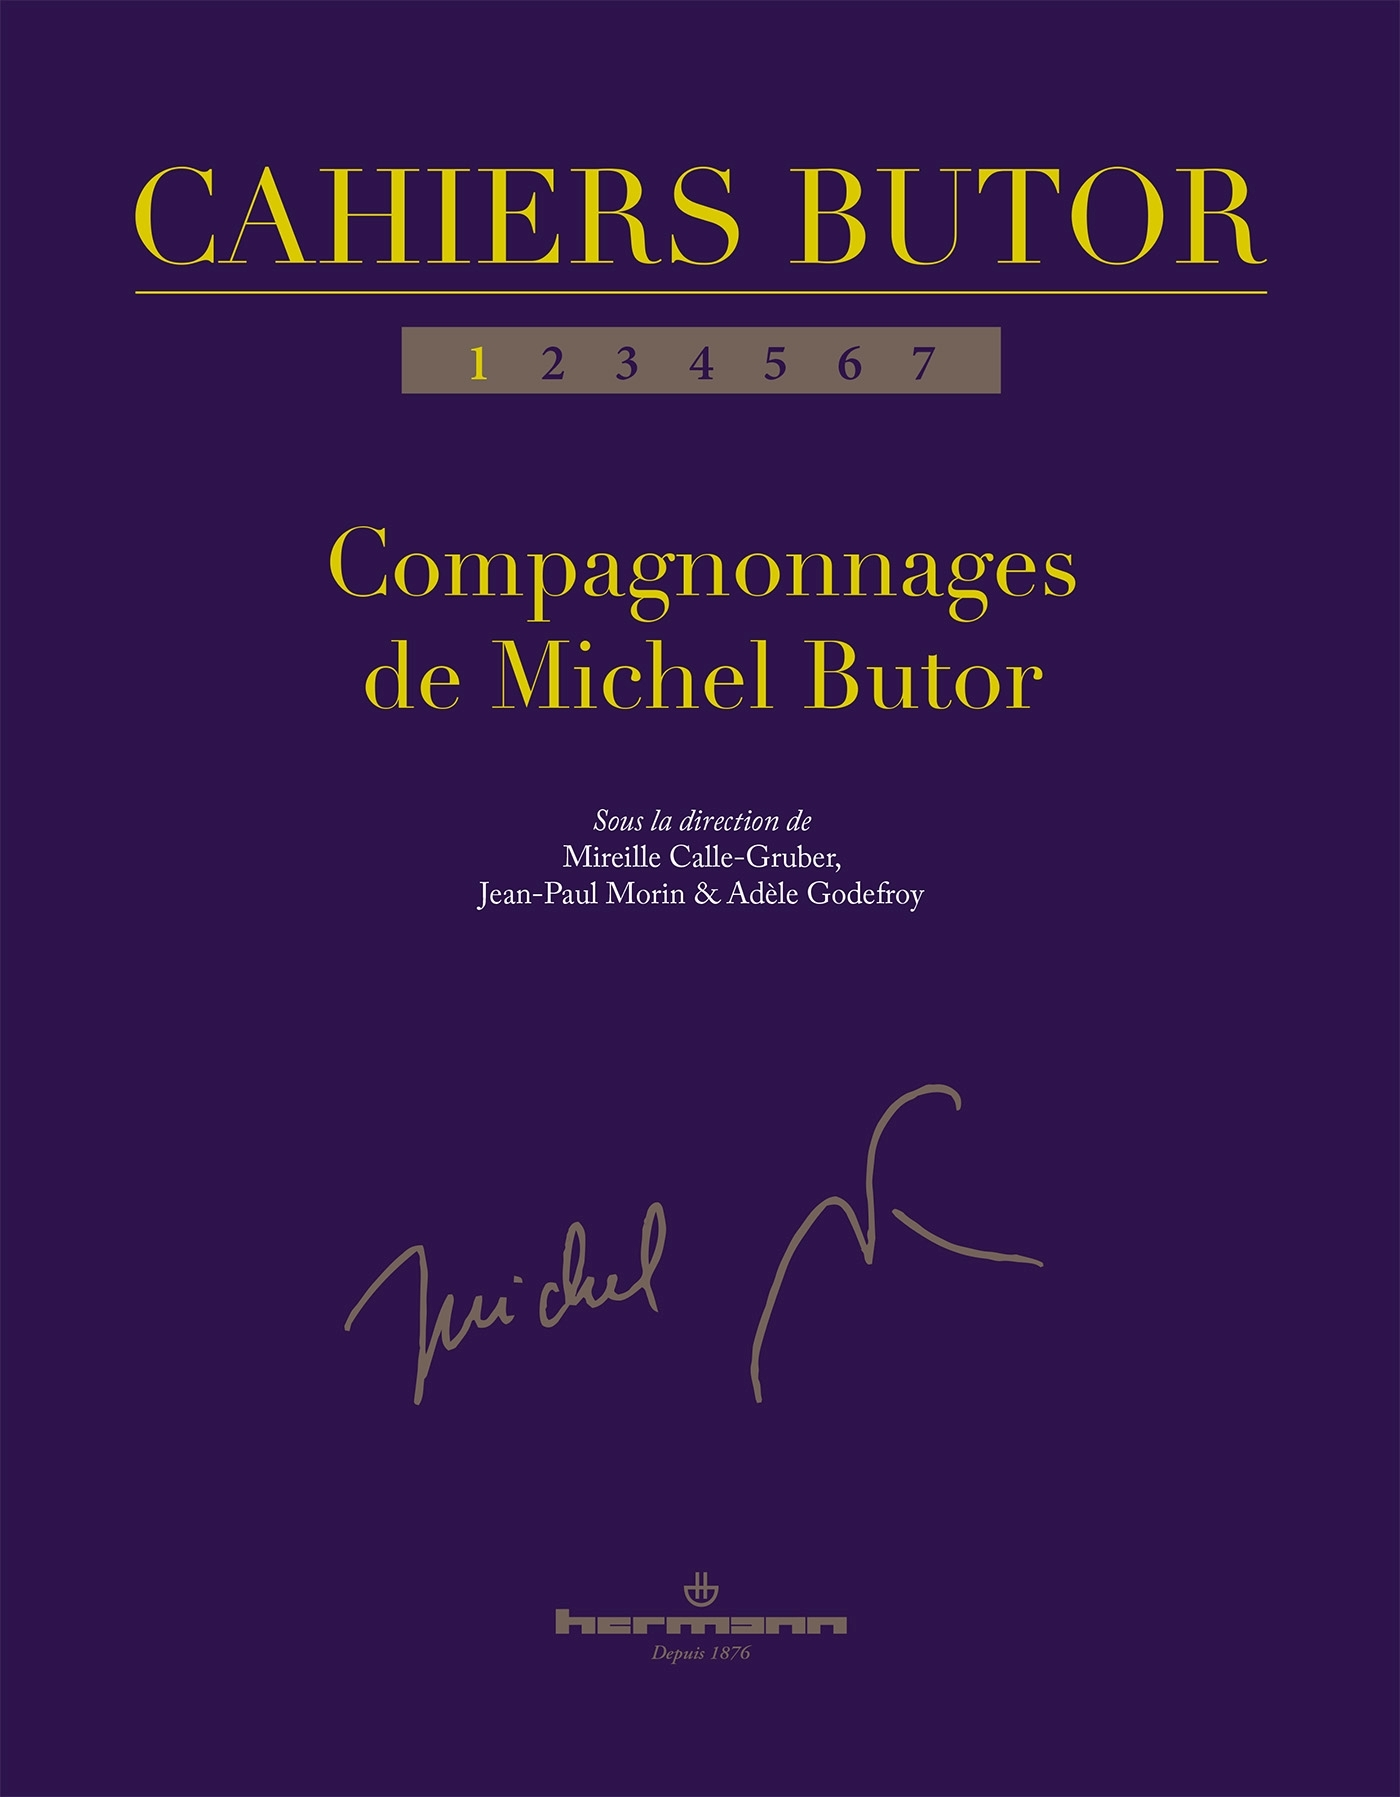 CAHIERS BUTOR N  1 - COMPAGNONNAGES